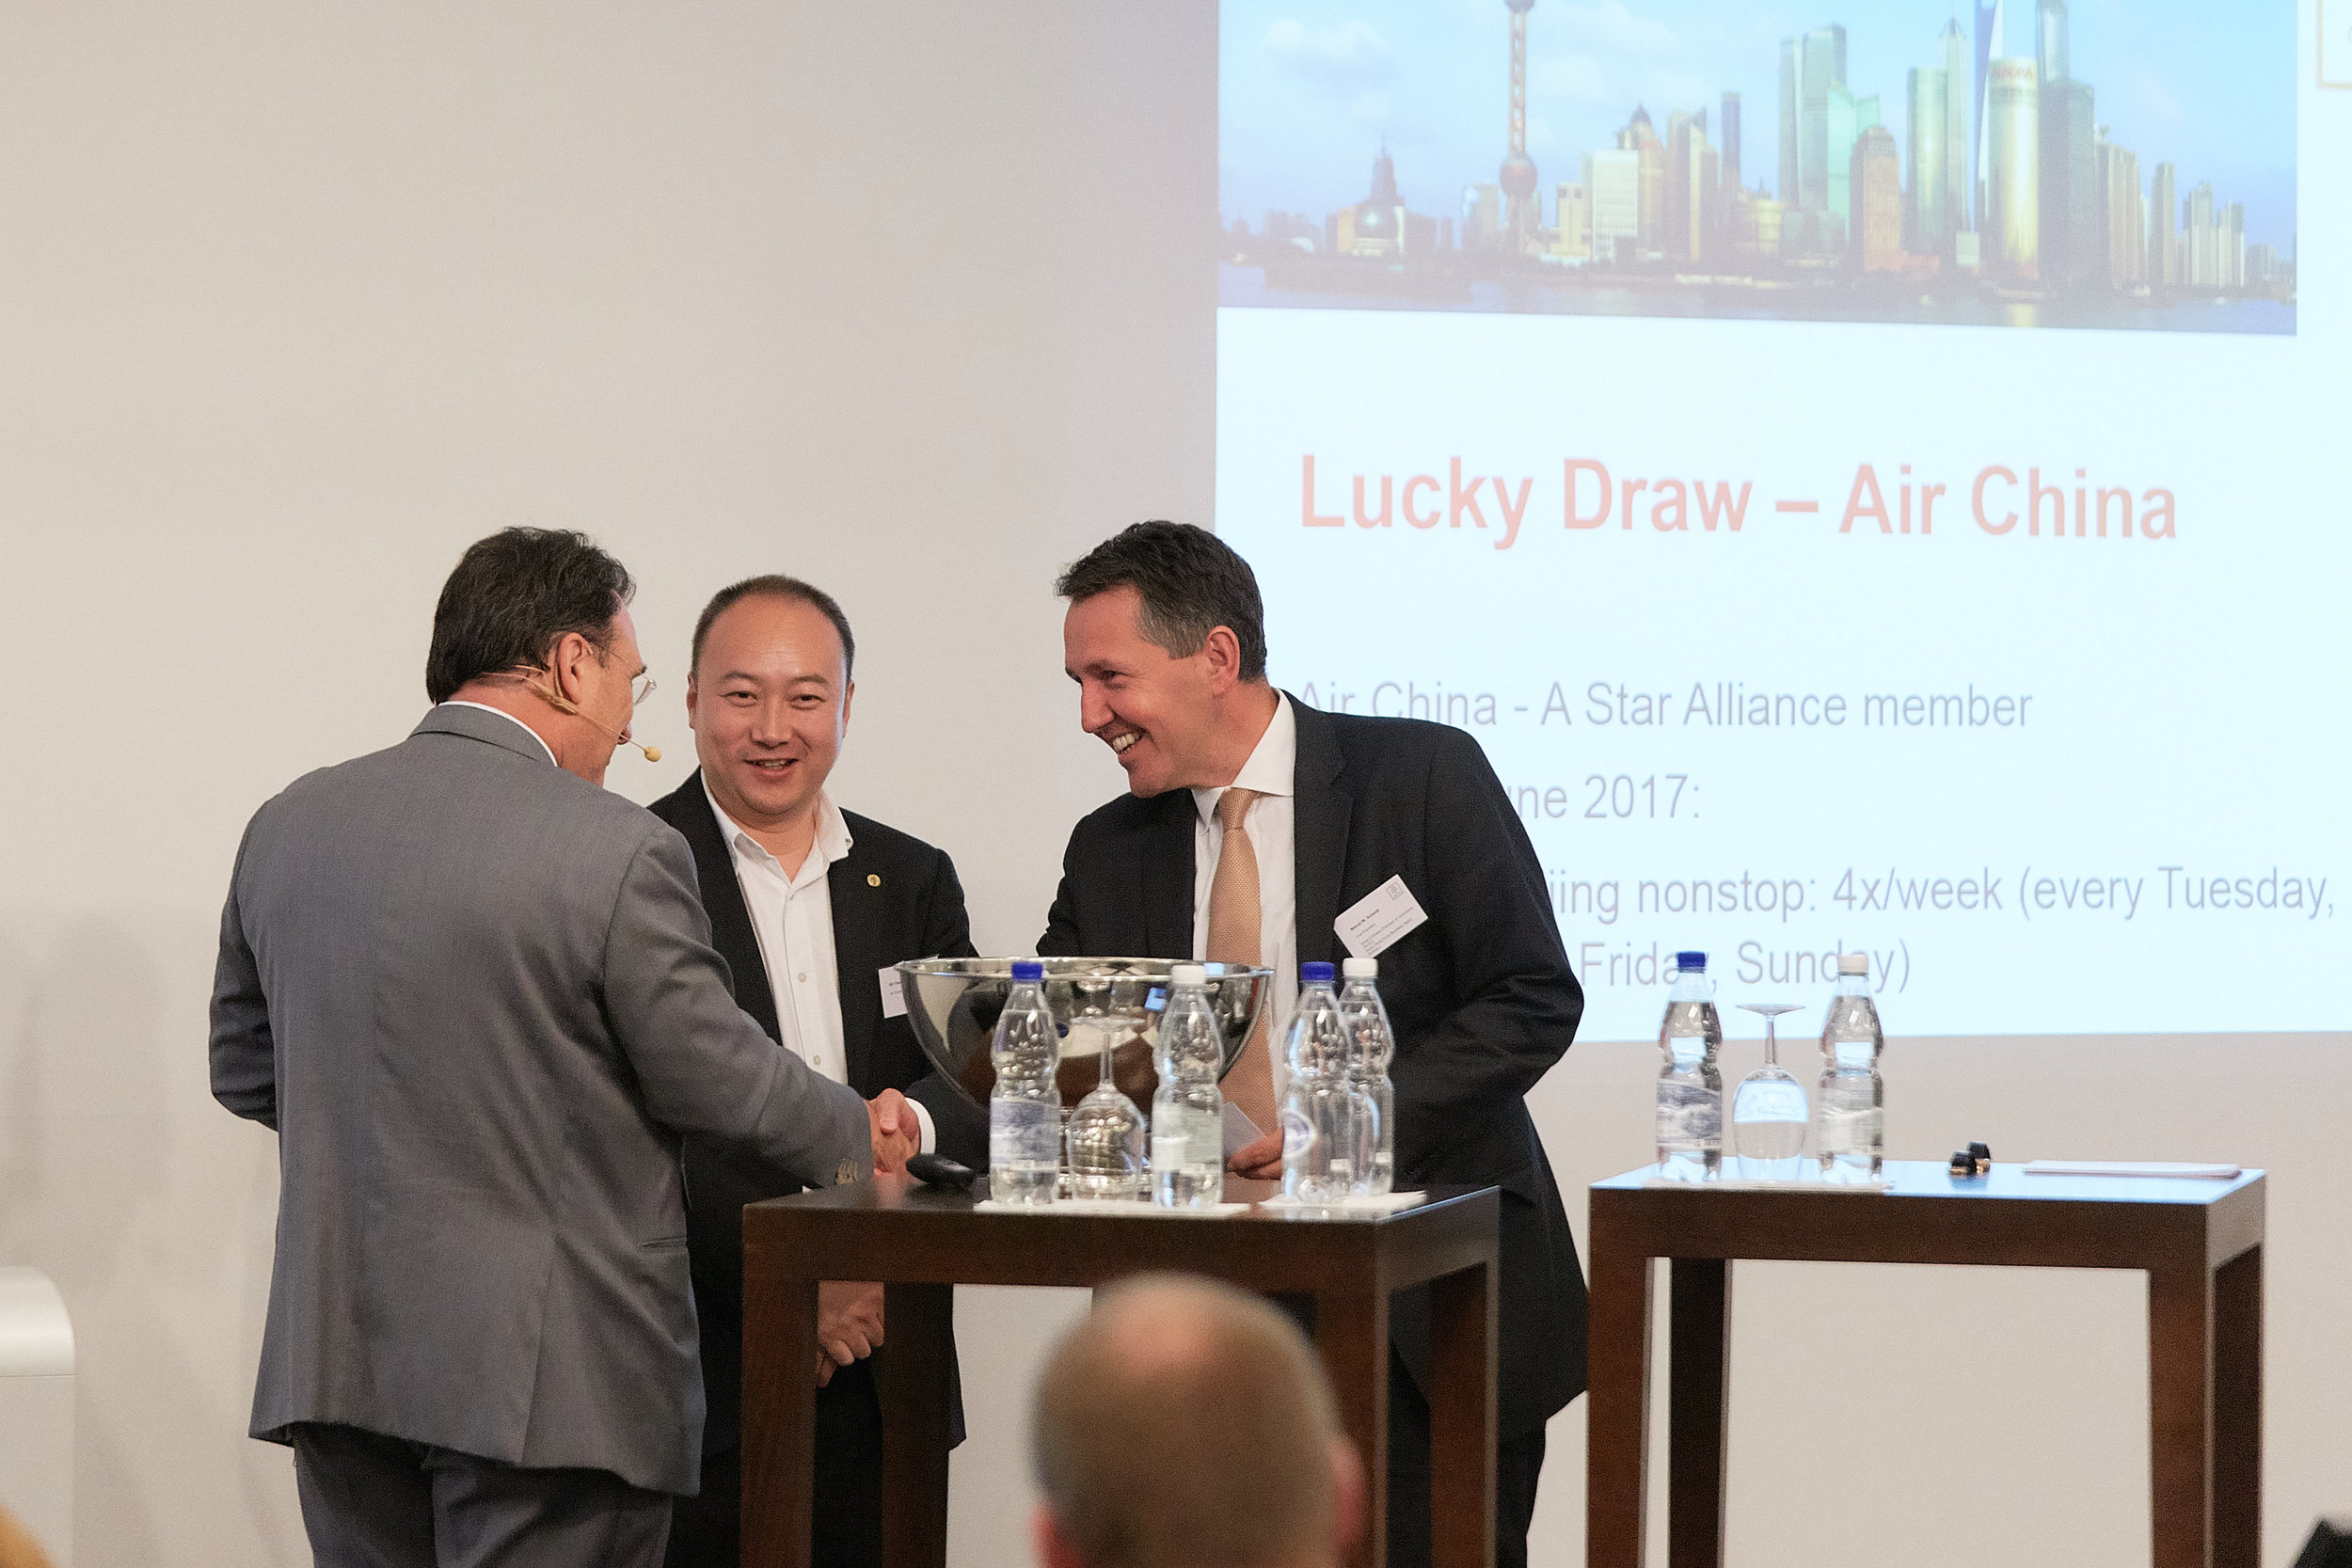 RMB Internationalization � Road to 2020 � Lucky Draw by Air China & Closing